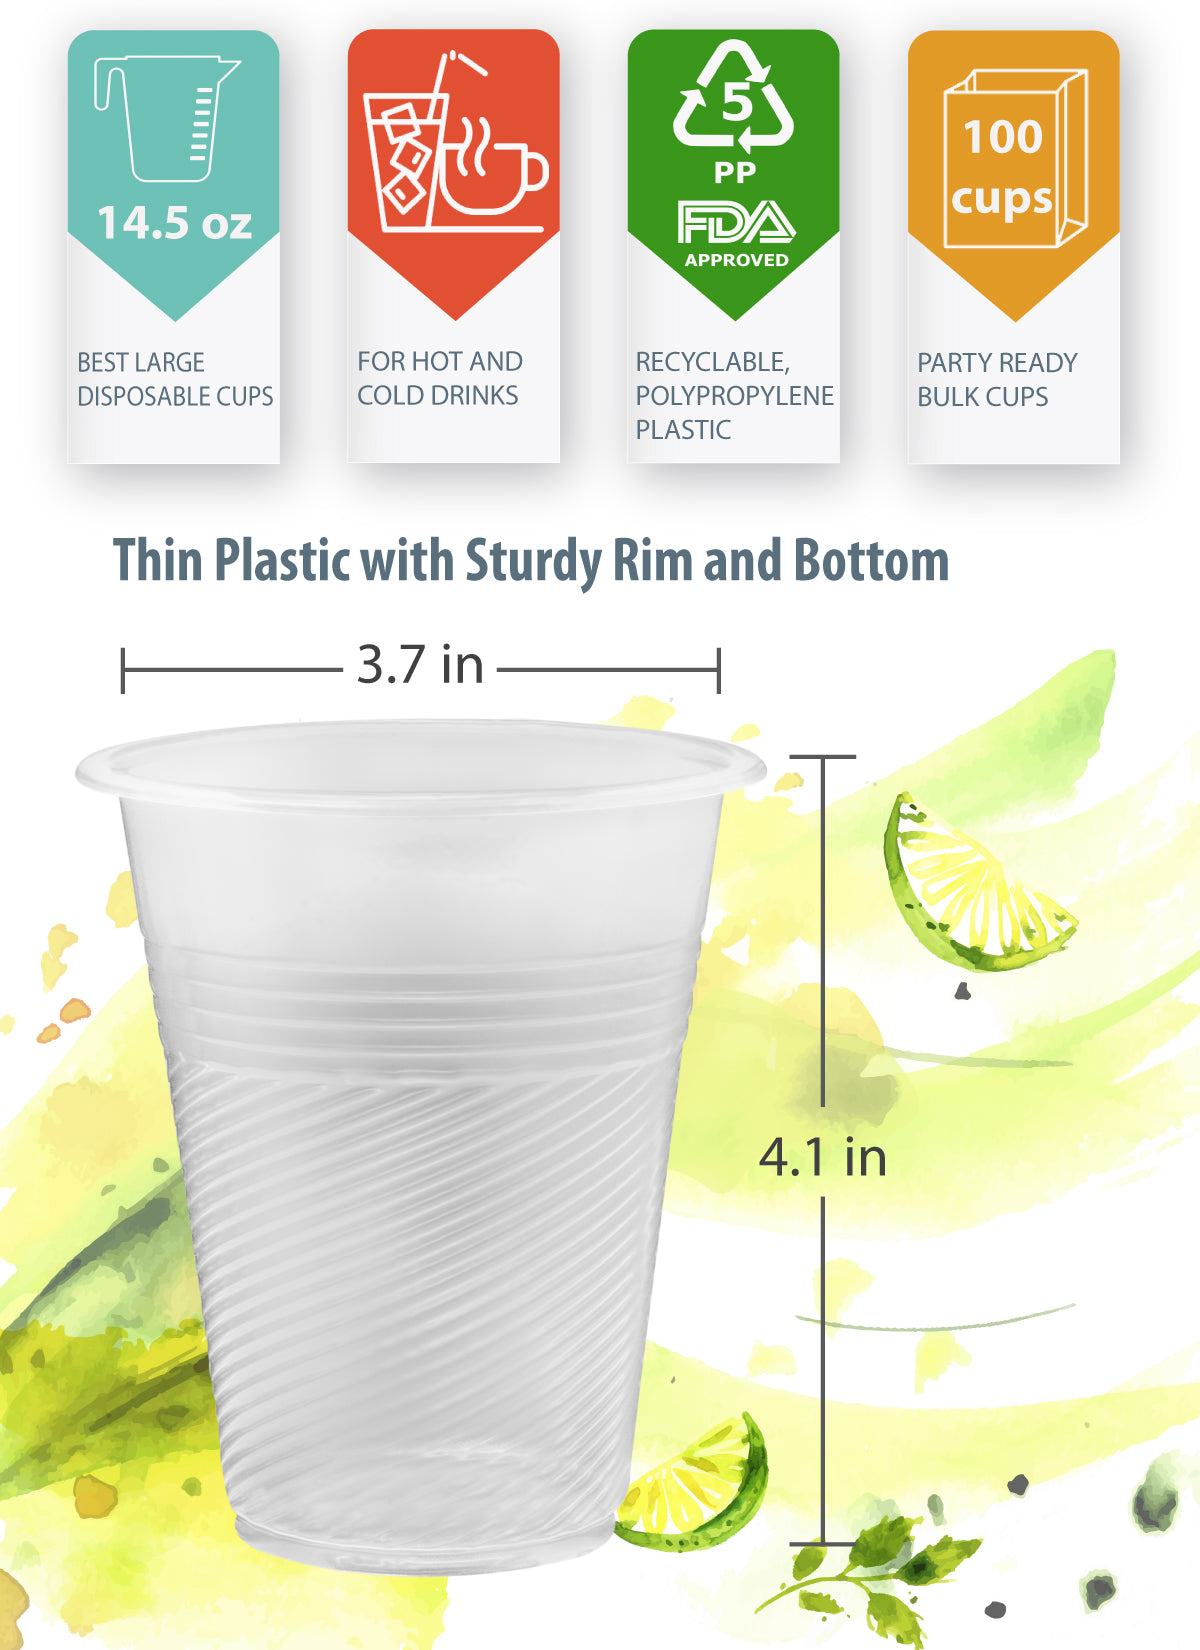 14 oz Plastic Cups Clear, 100 Thin Disposable Plastic Glassess with Sturdy Rim and Bottom